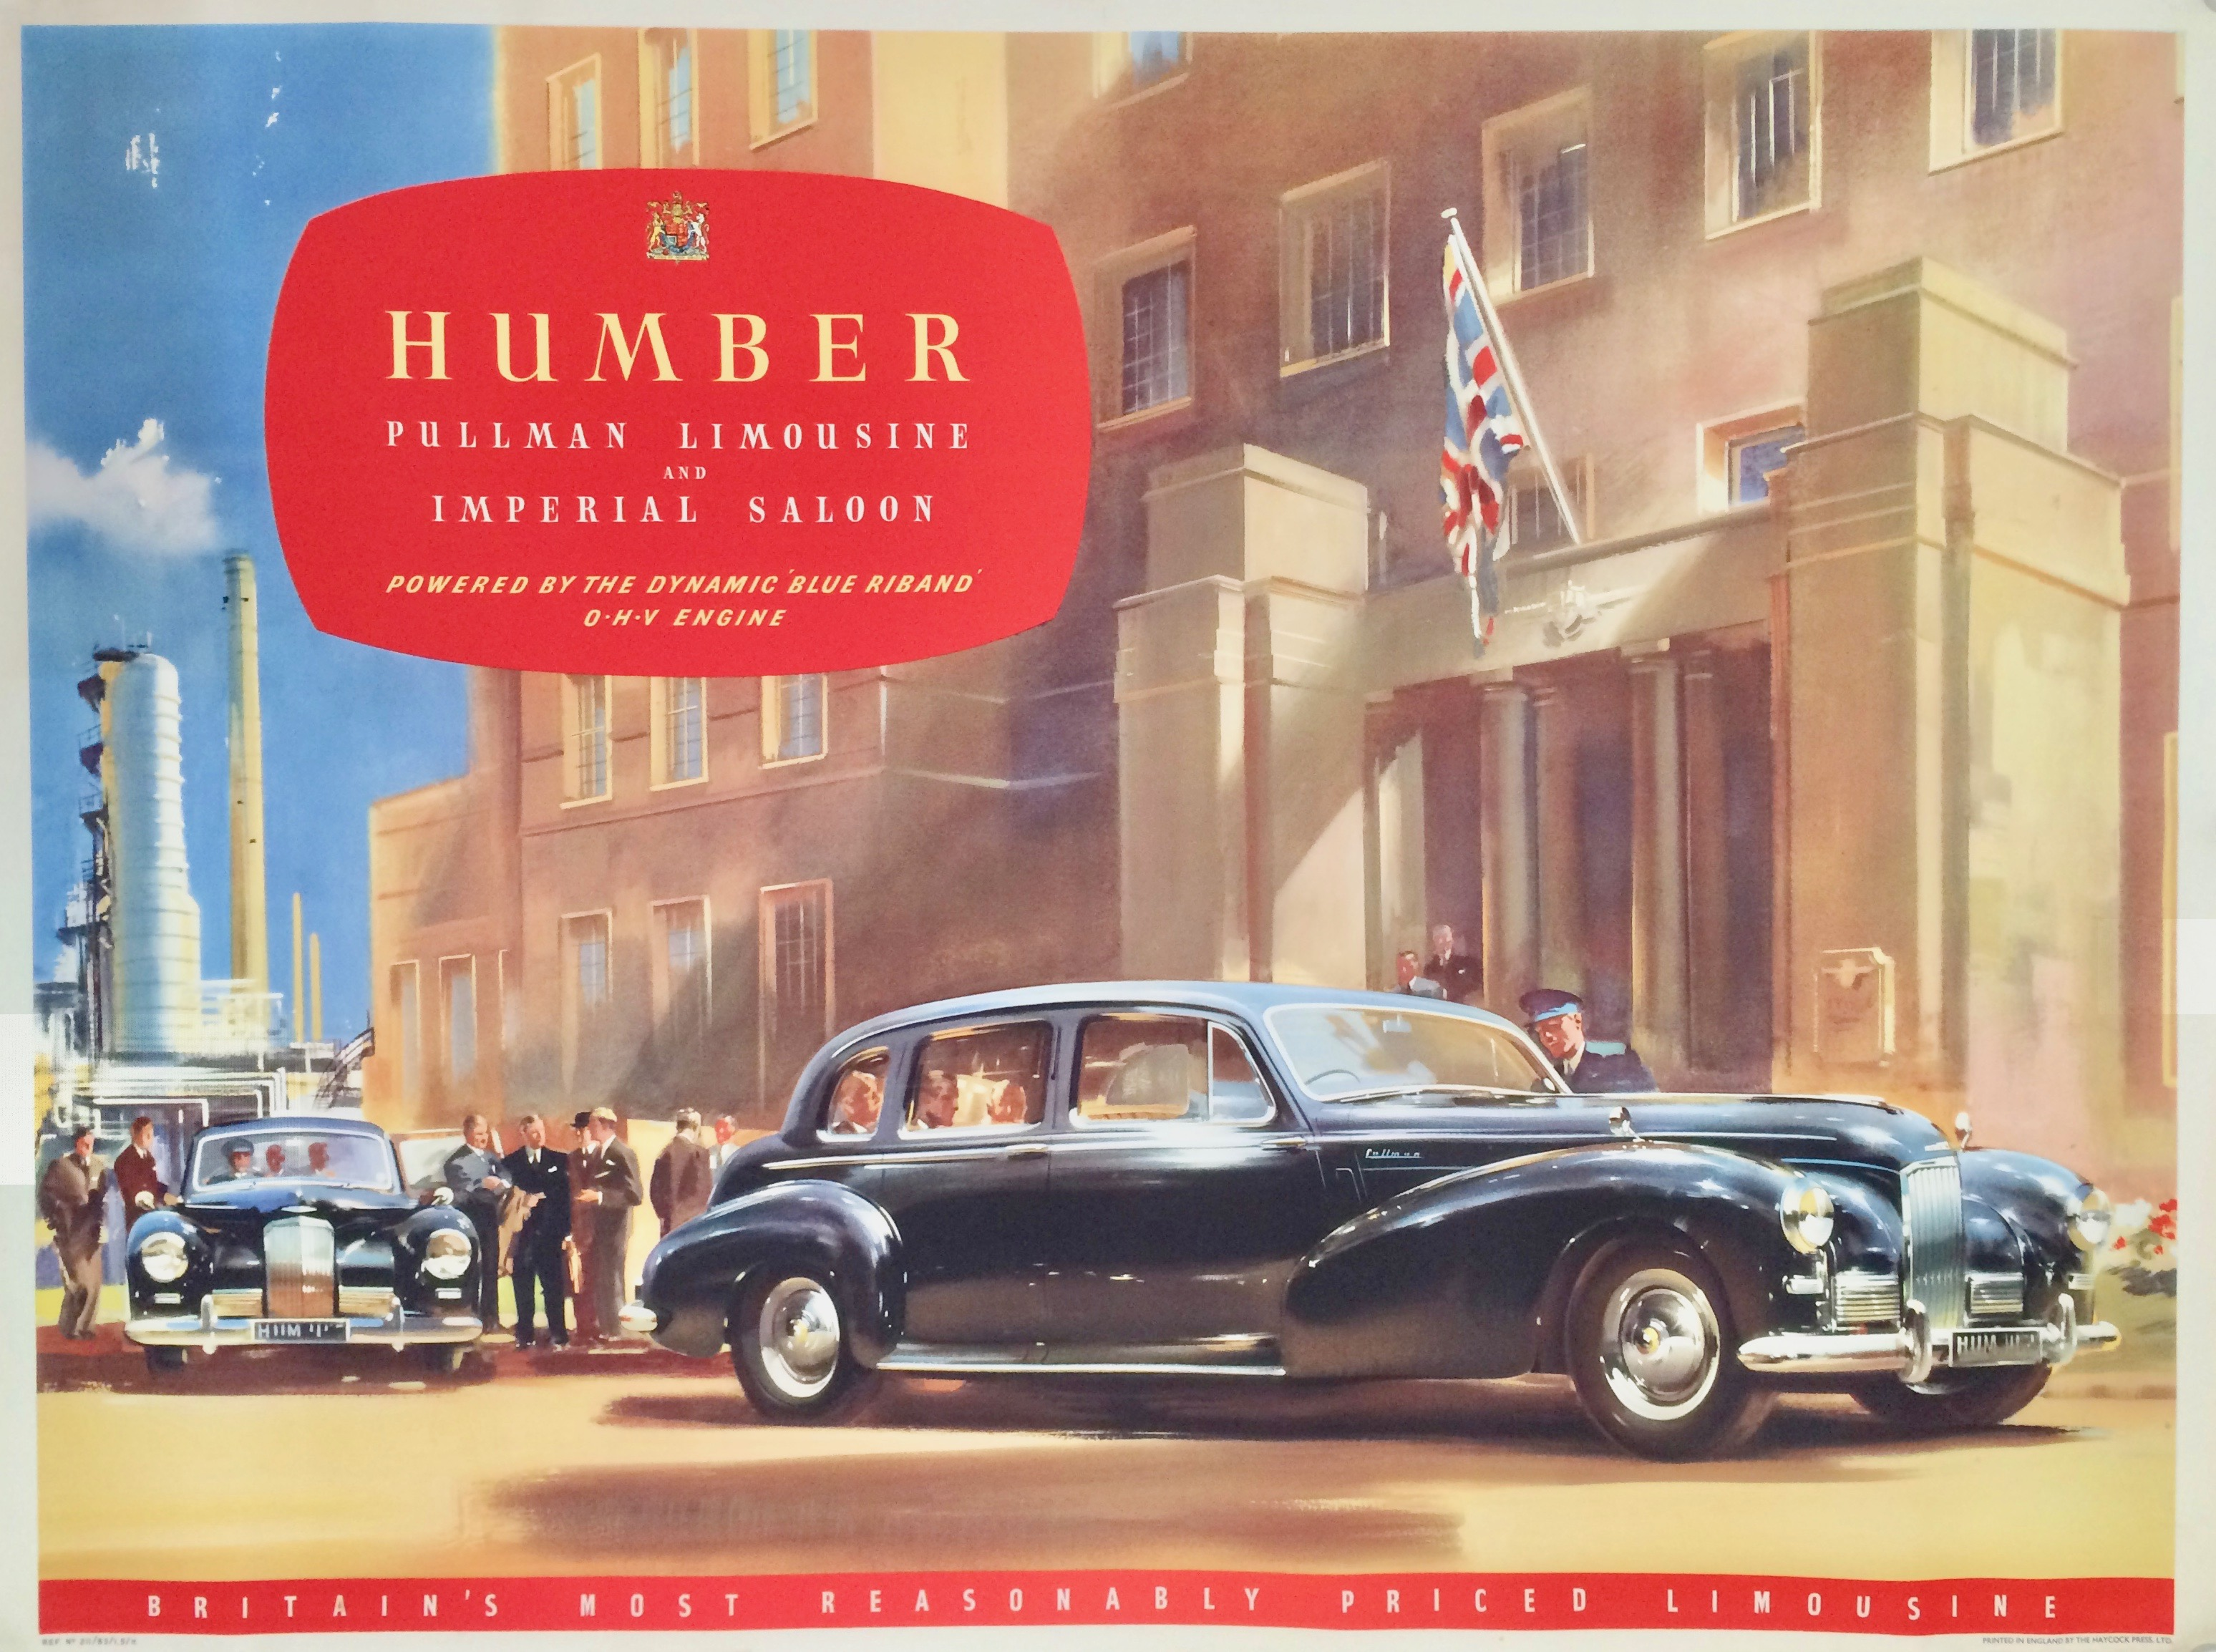 Humber Pullman car parked in front of a building with union jack flying.